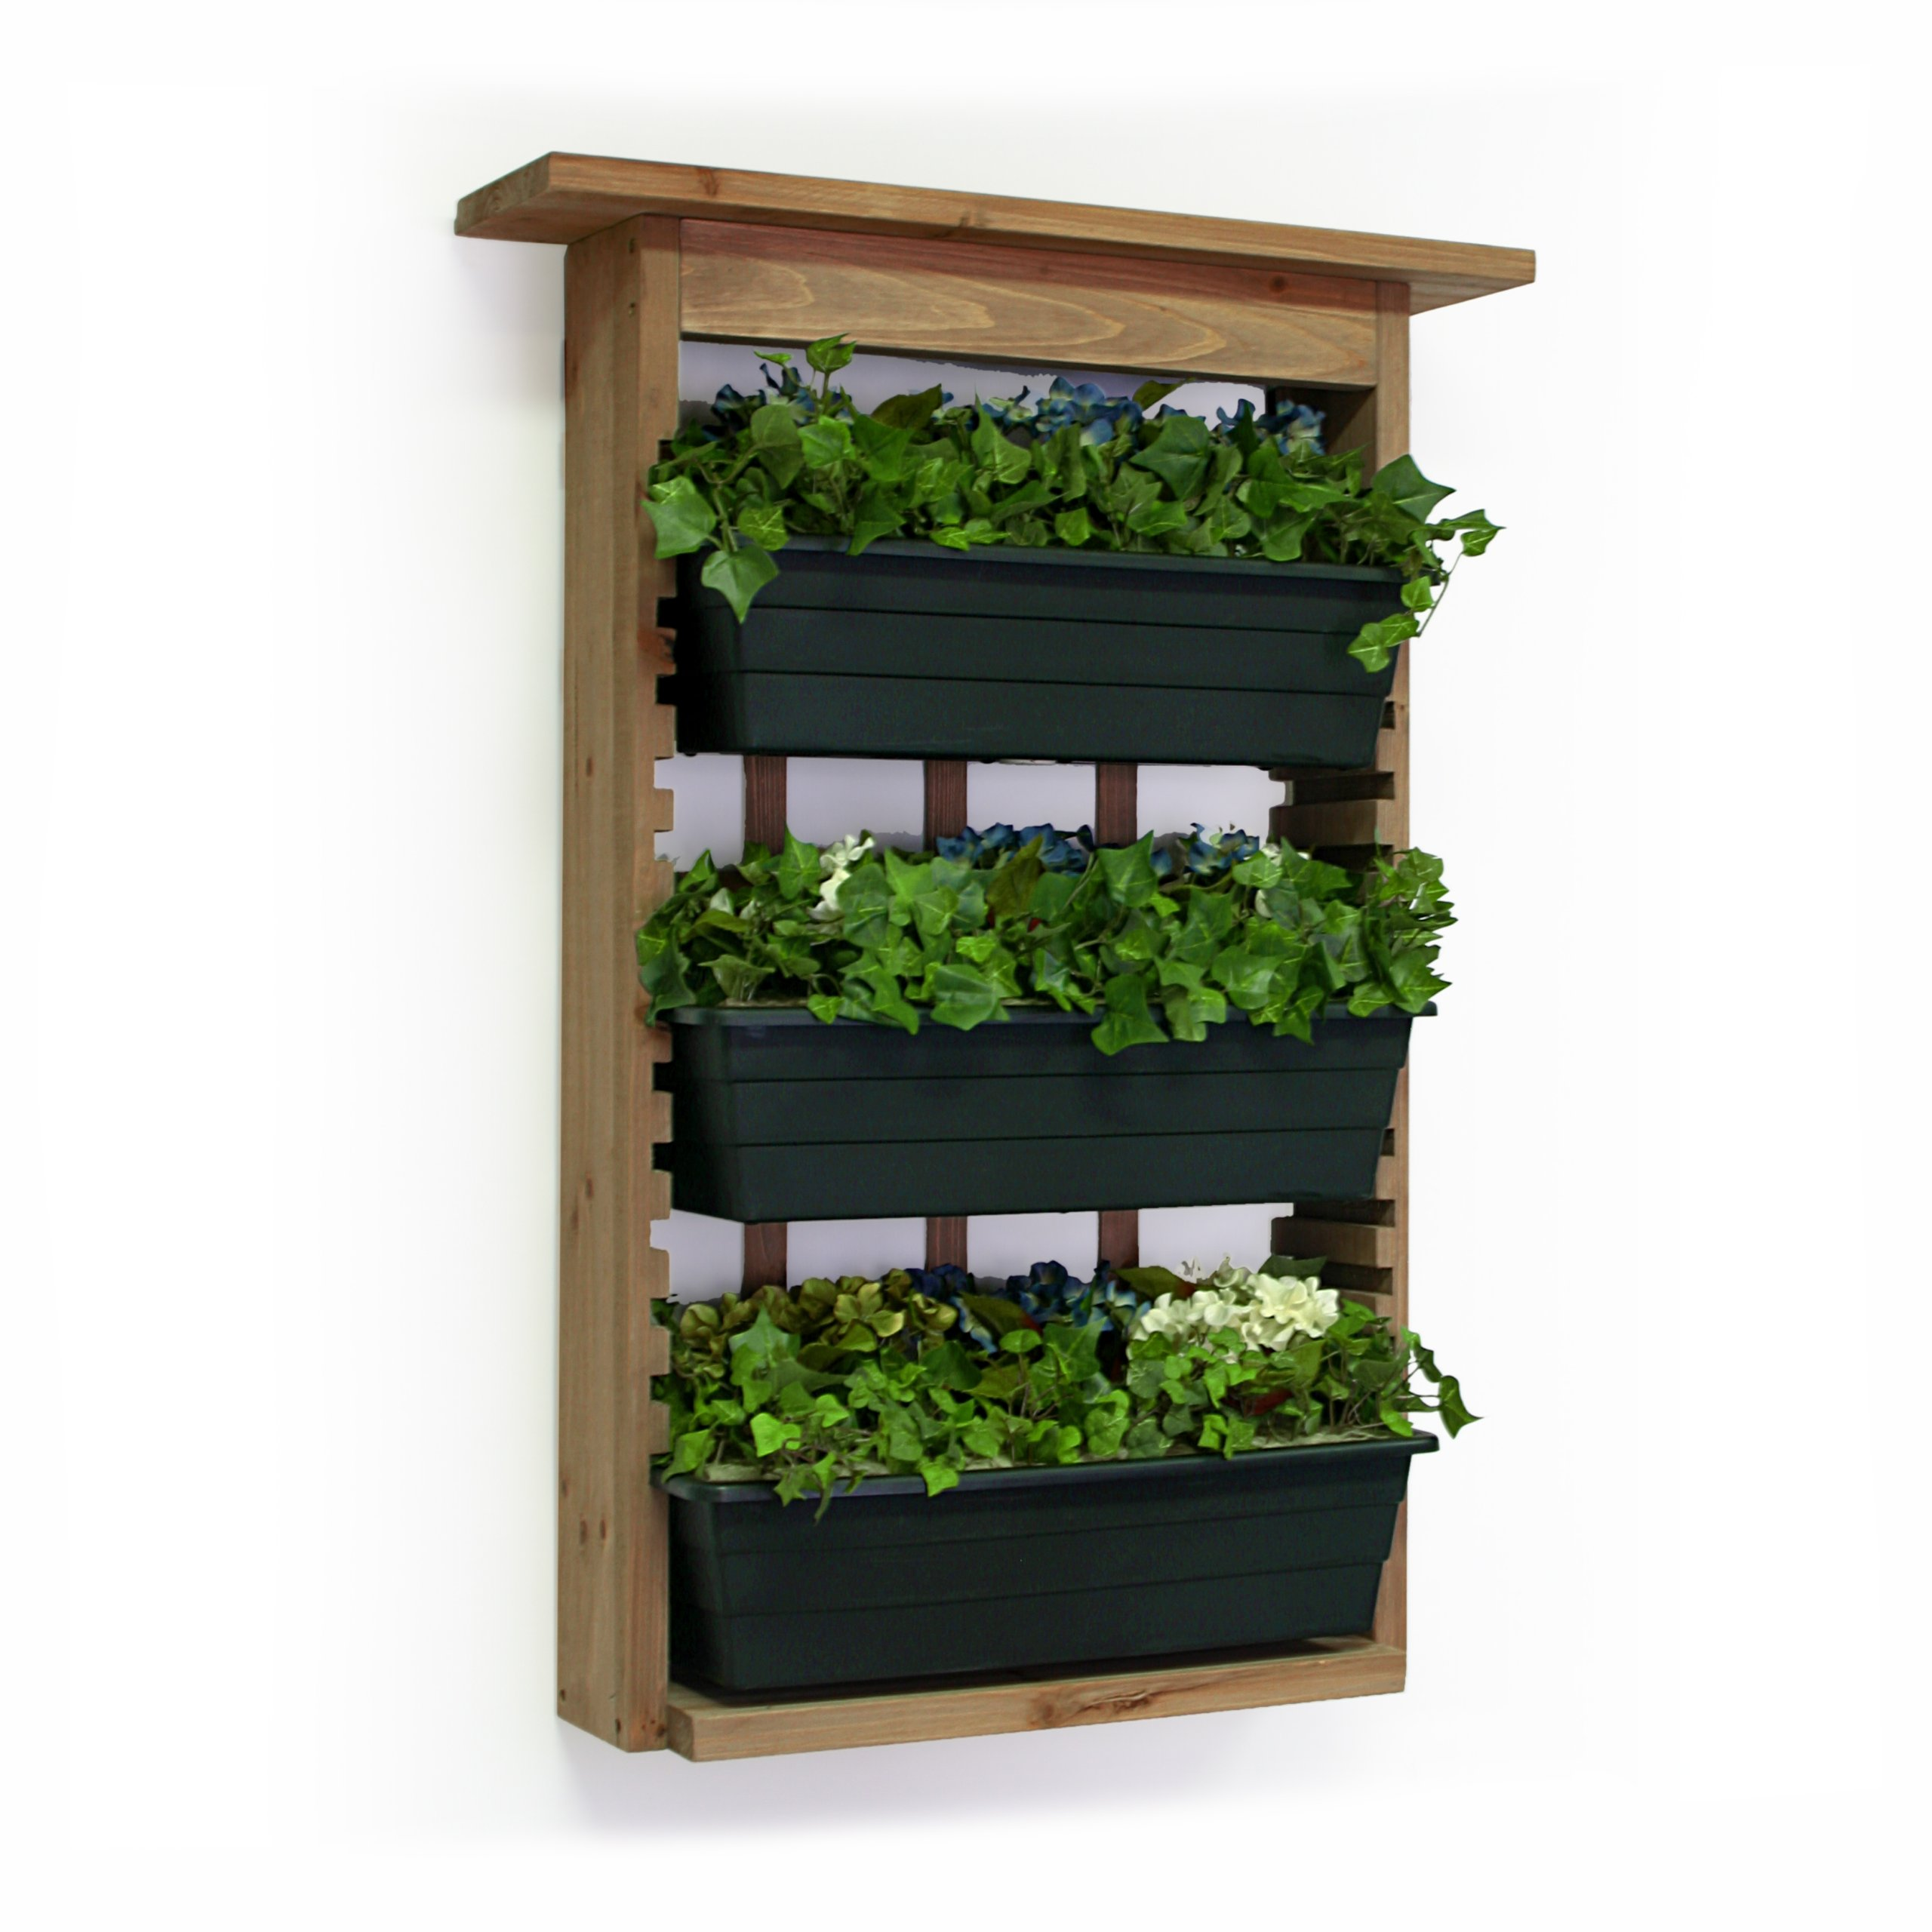 Algreen 34002 Garden View, Vertical Living Wall Planter by Algreen